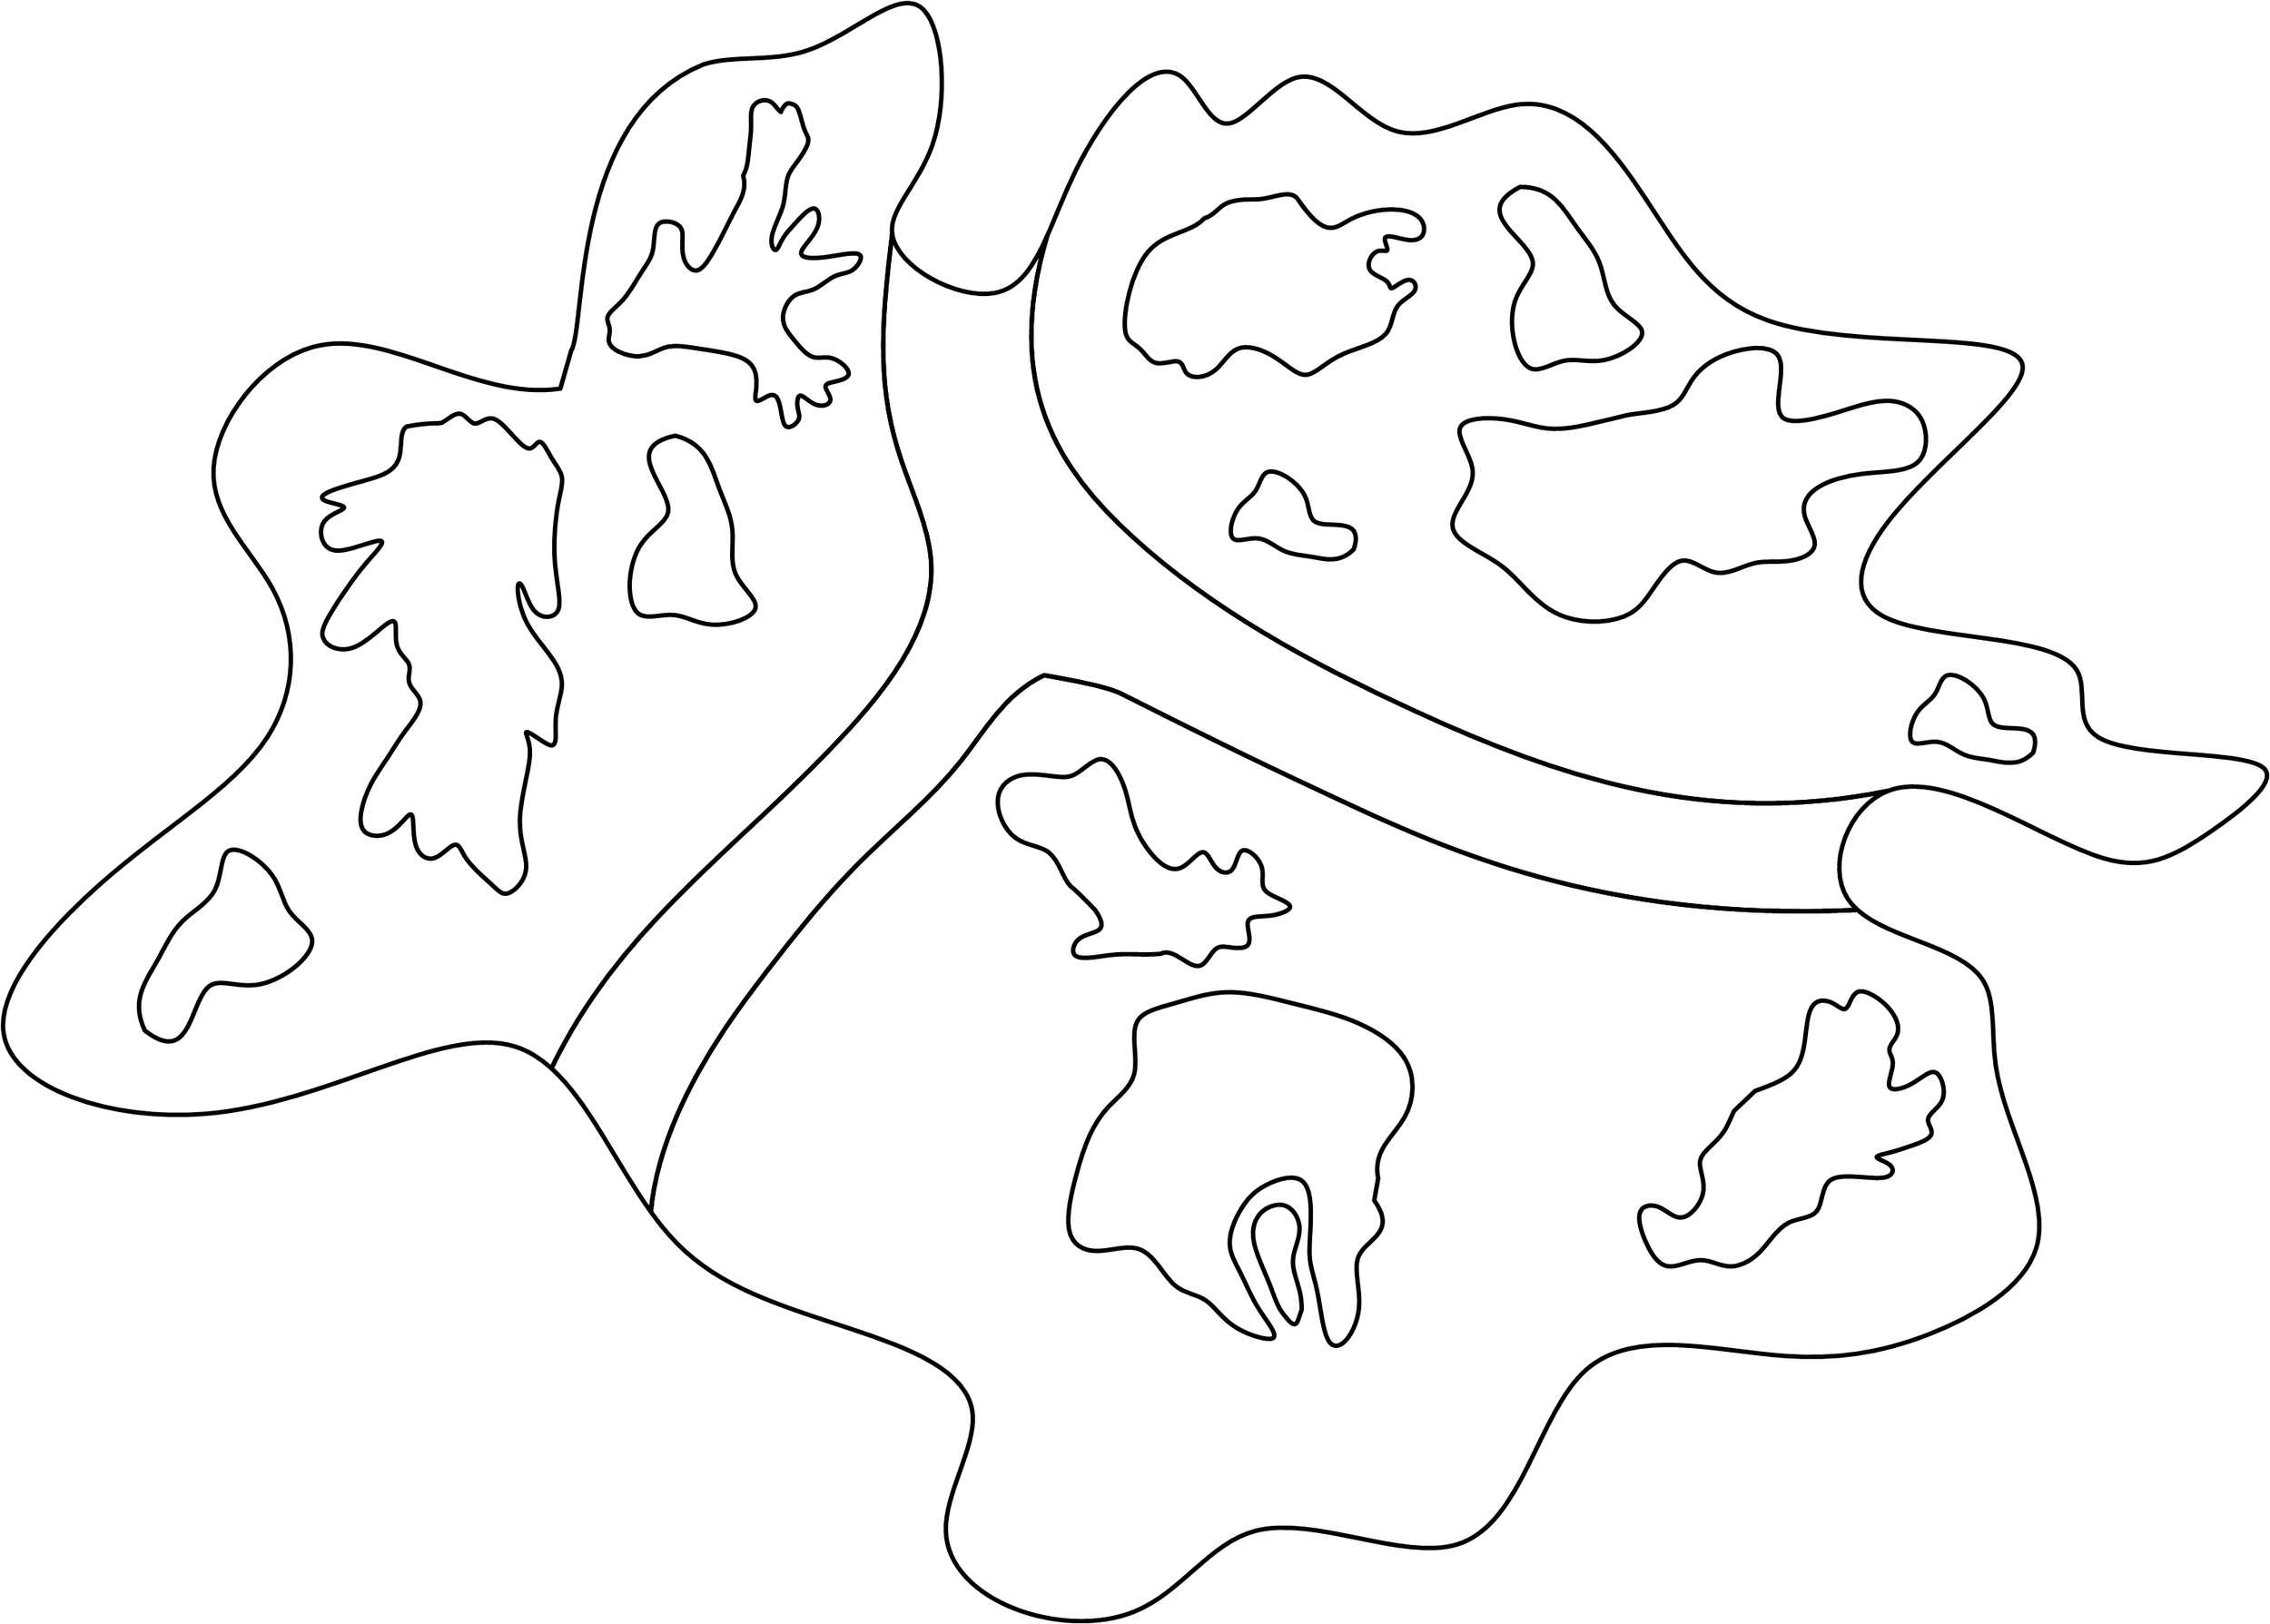 This map was built using 8 amoeba tracings, including the boundary. Some are repeated more than once.